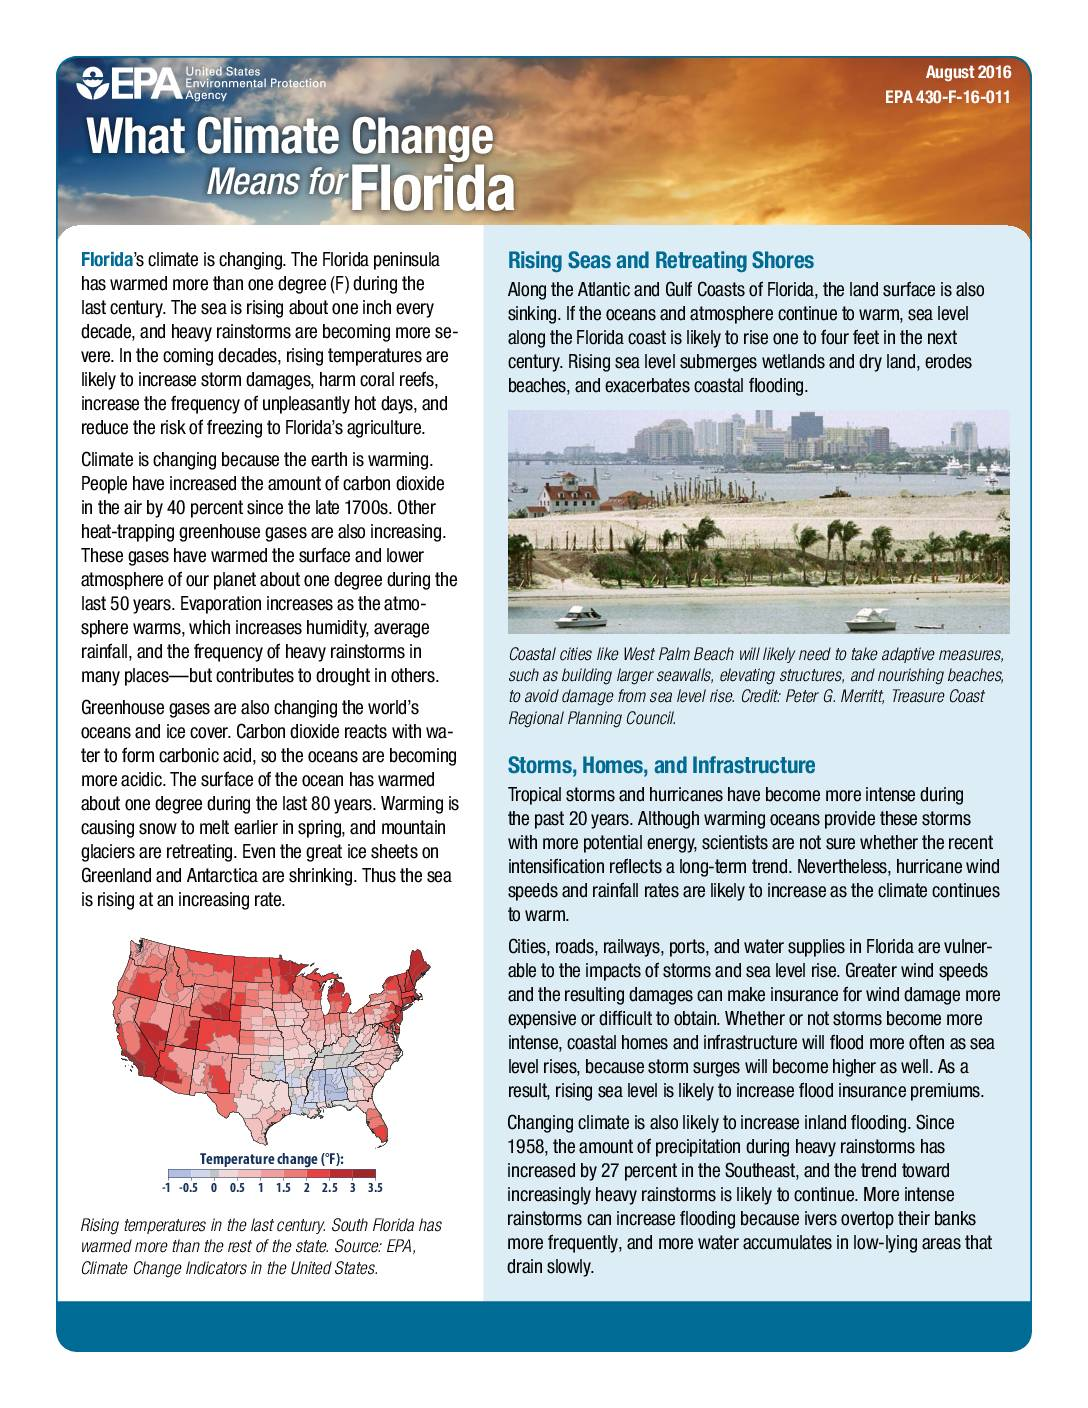 U.S. Environmental Protection Agency: What Climate Change Means for Florida (2016)